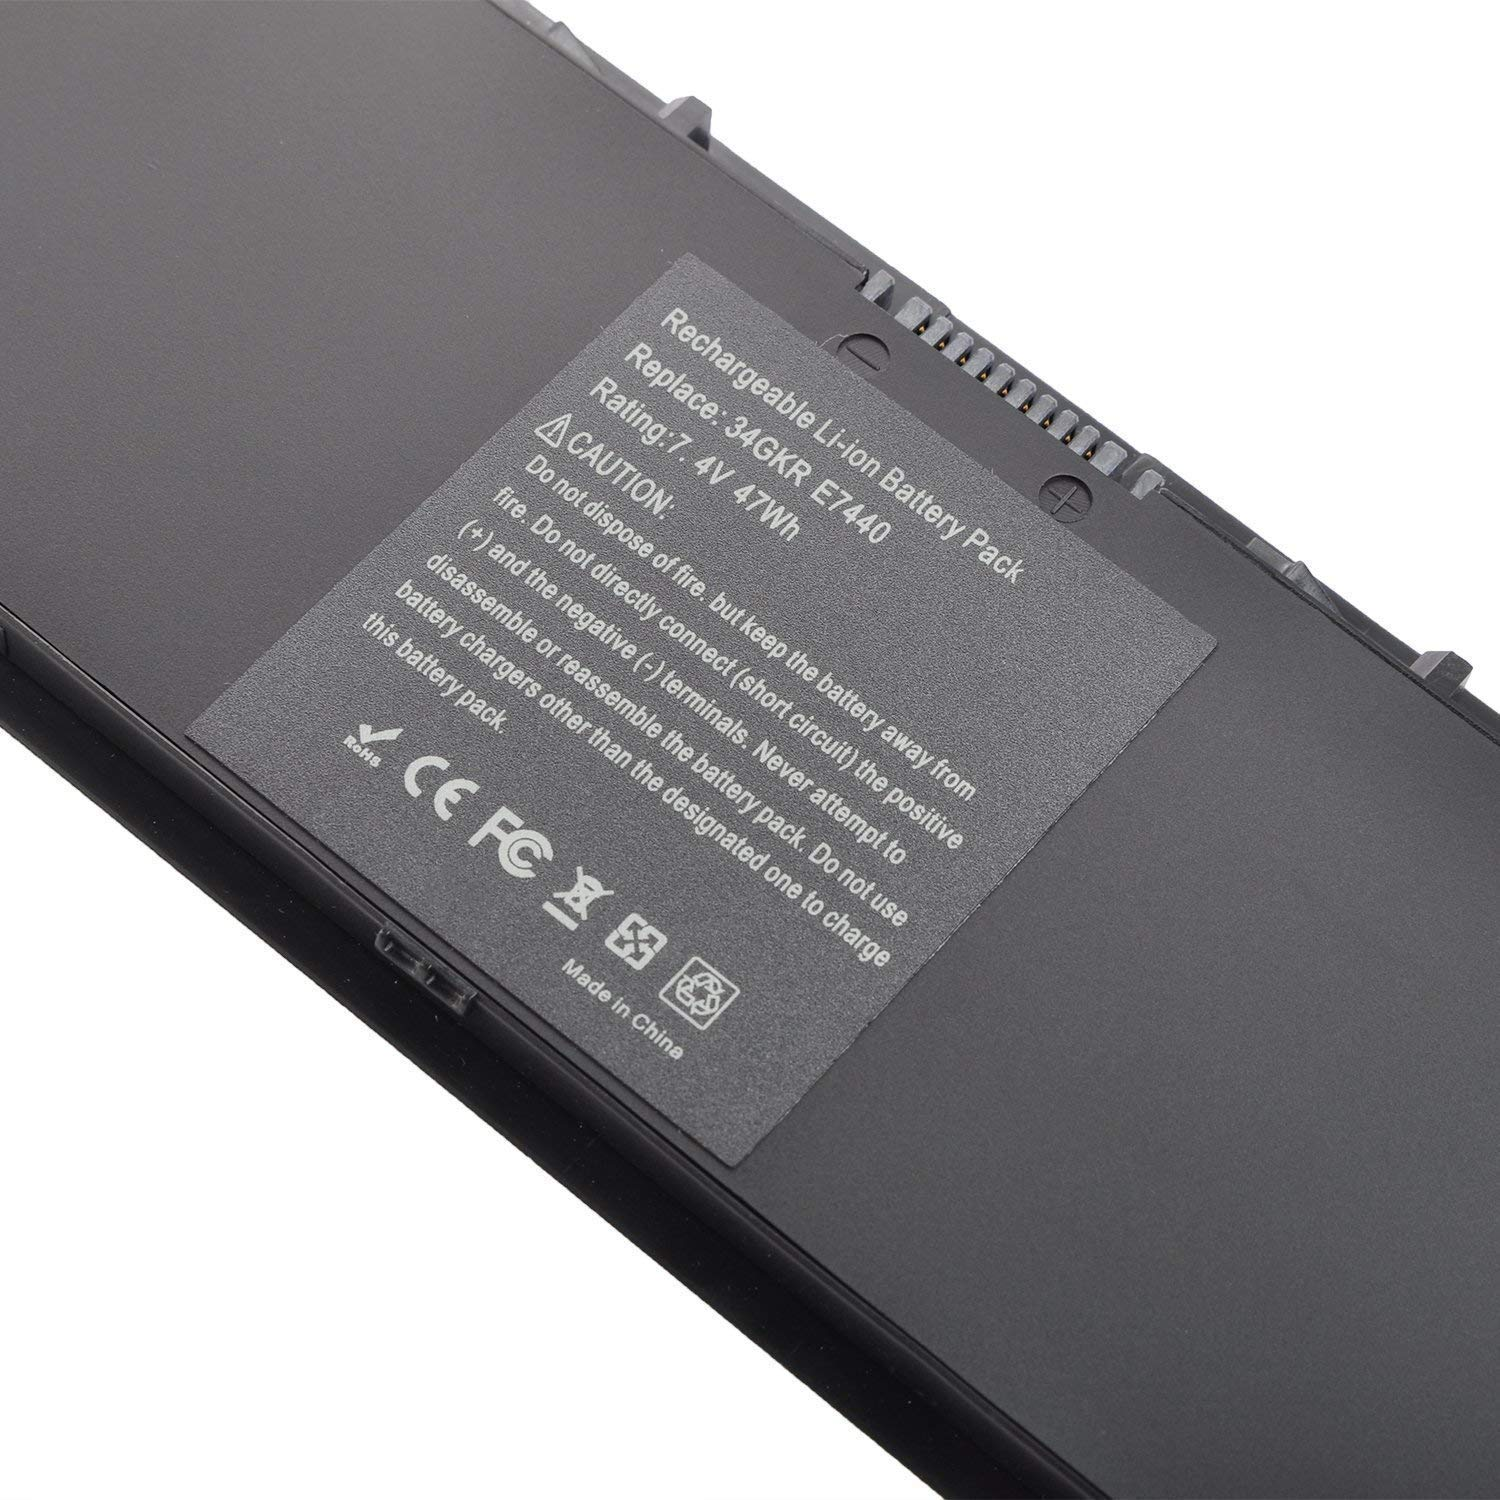 E7440 Laptop Battery Compatible with Dell Latitude E7450 E7420 E225846  Series 34GKR 3RNFD PFXCR F38HT T19VW G95J5,0G95J5 5K1GW [7 4V 47WH  Black]-18